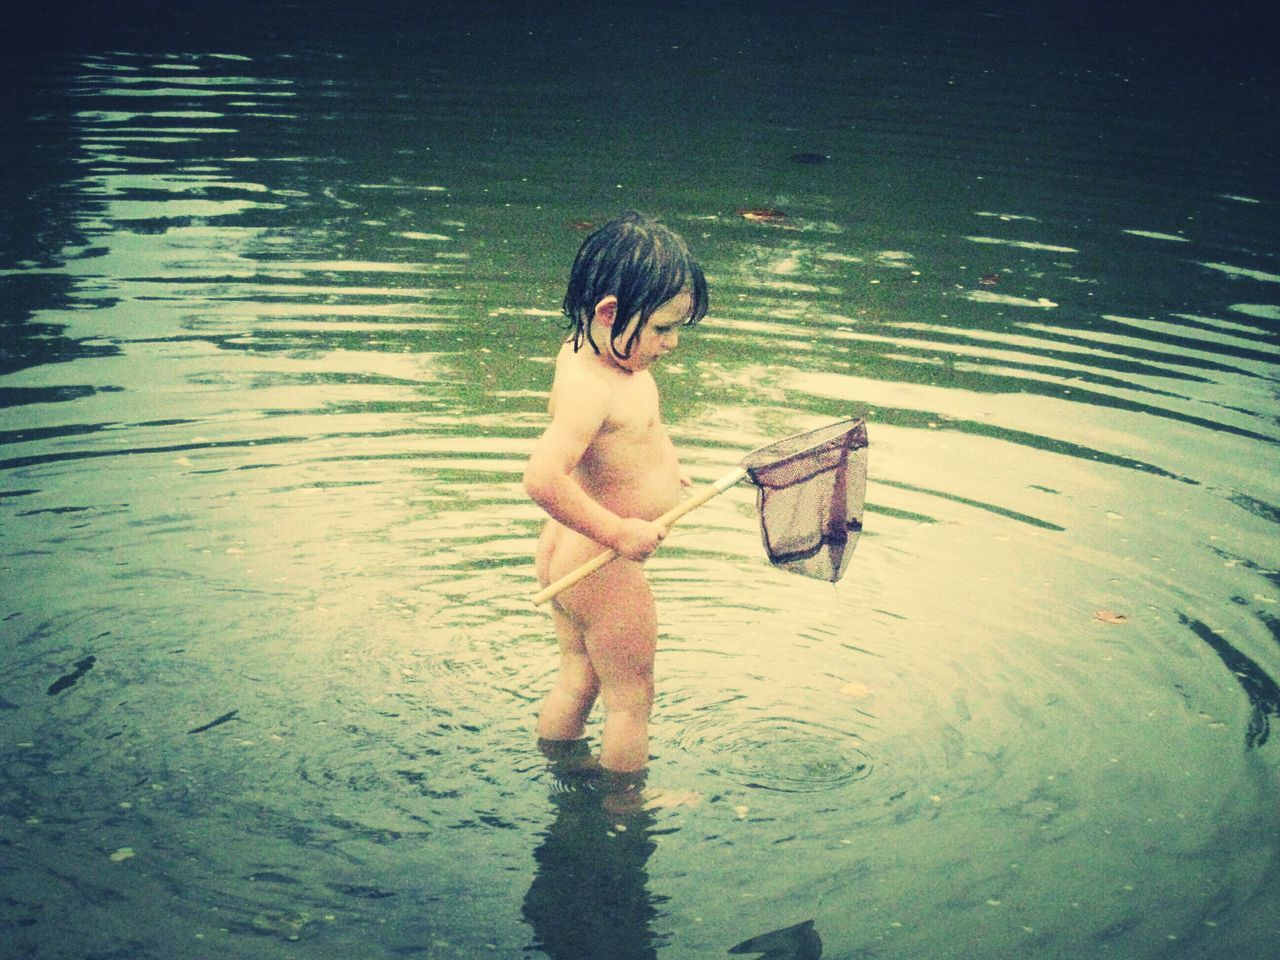 Naked Child With Fishing Net Standing In Lake